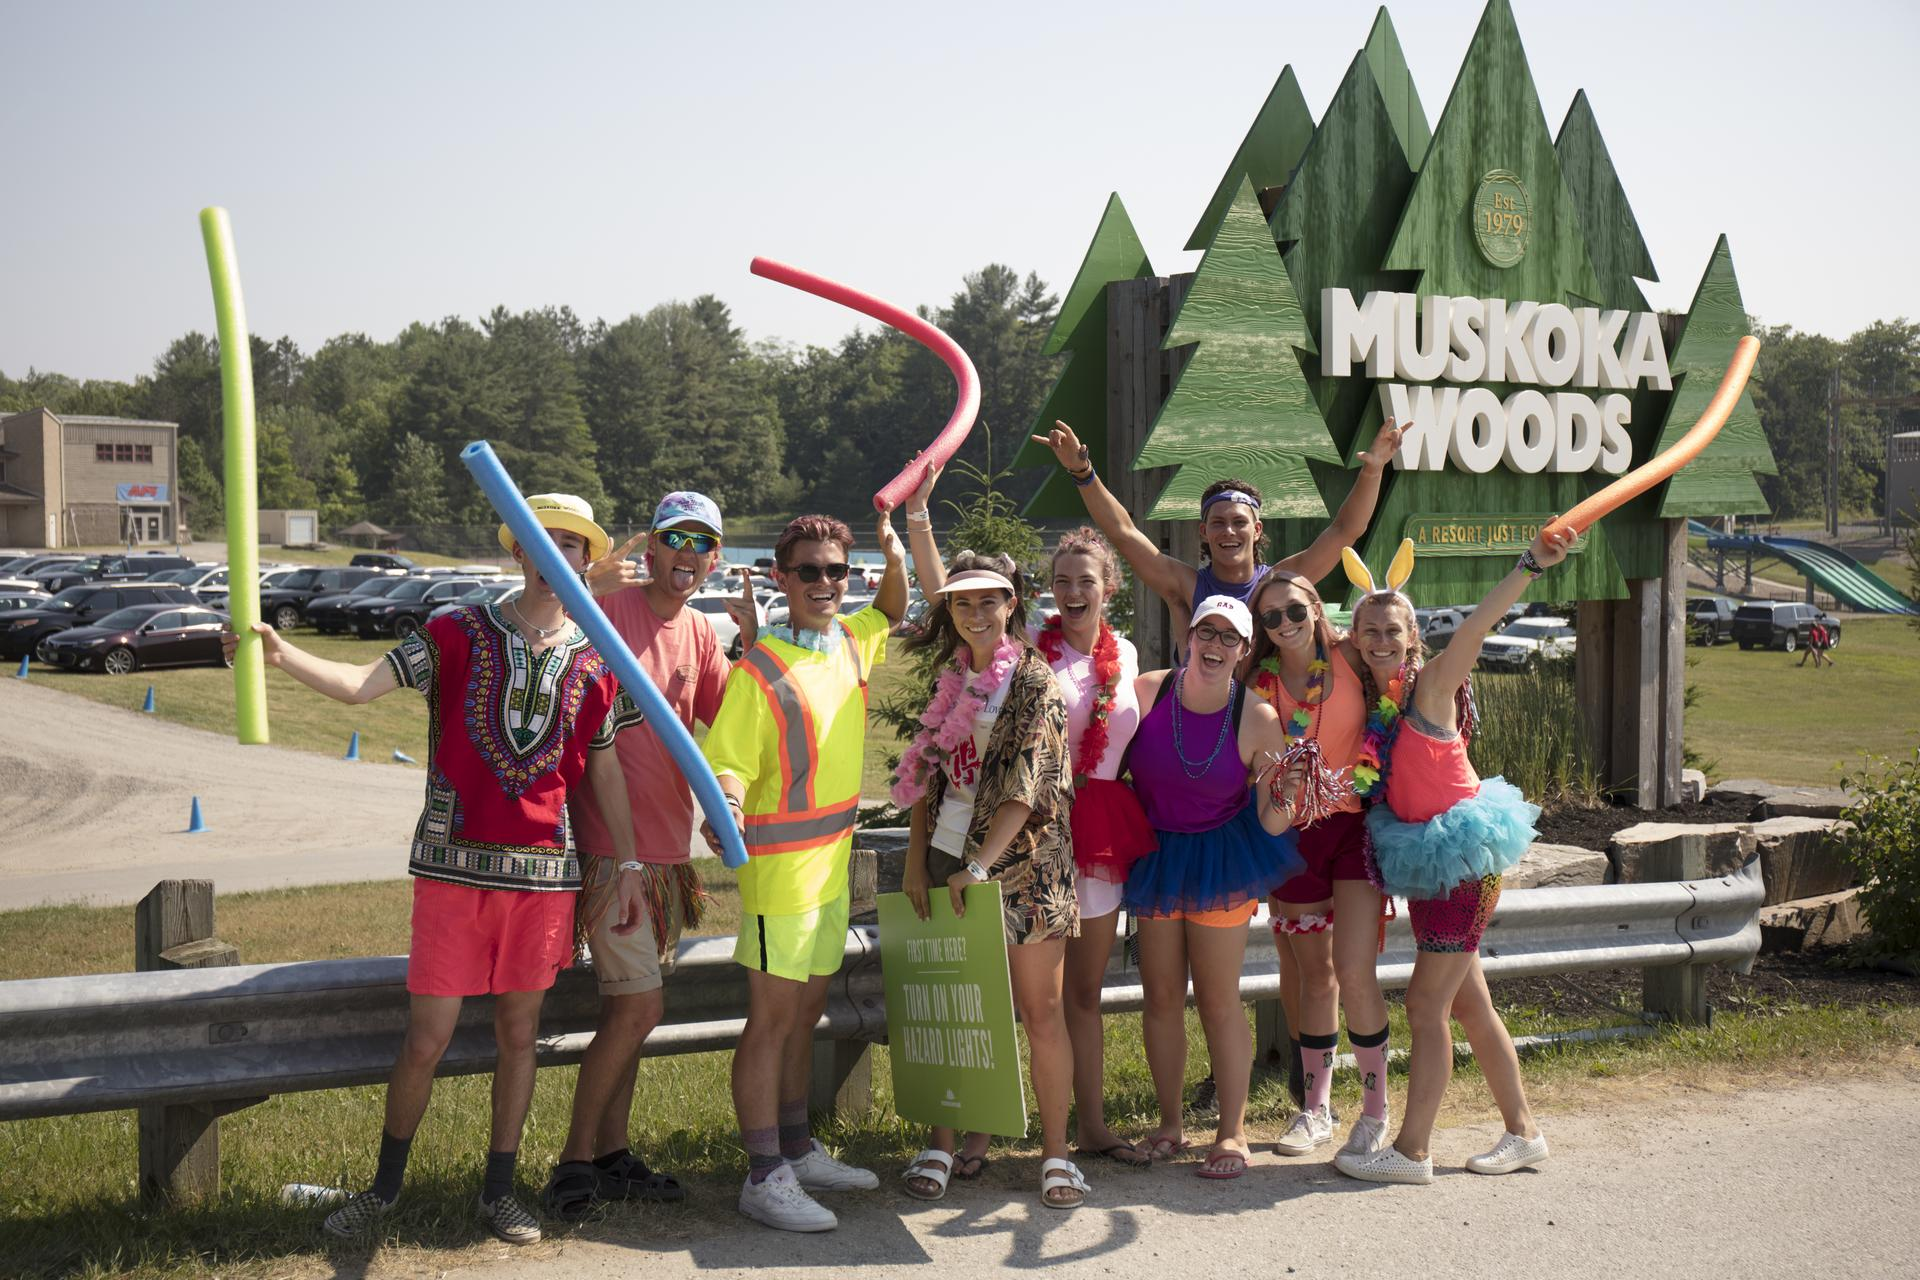 Muskoka Woods staff welcome guest to camp